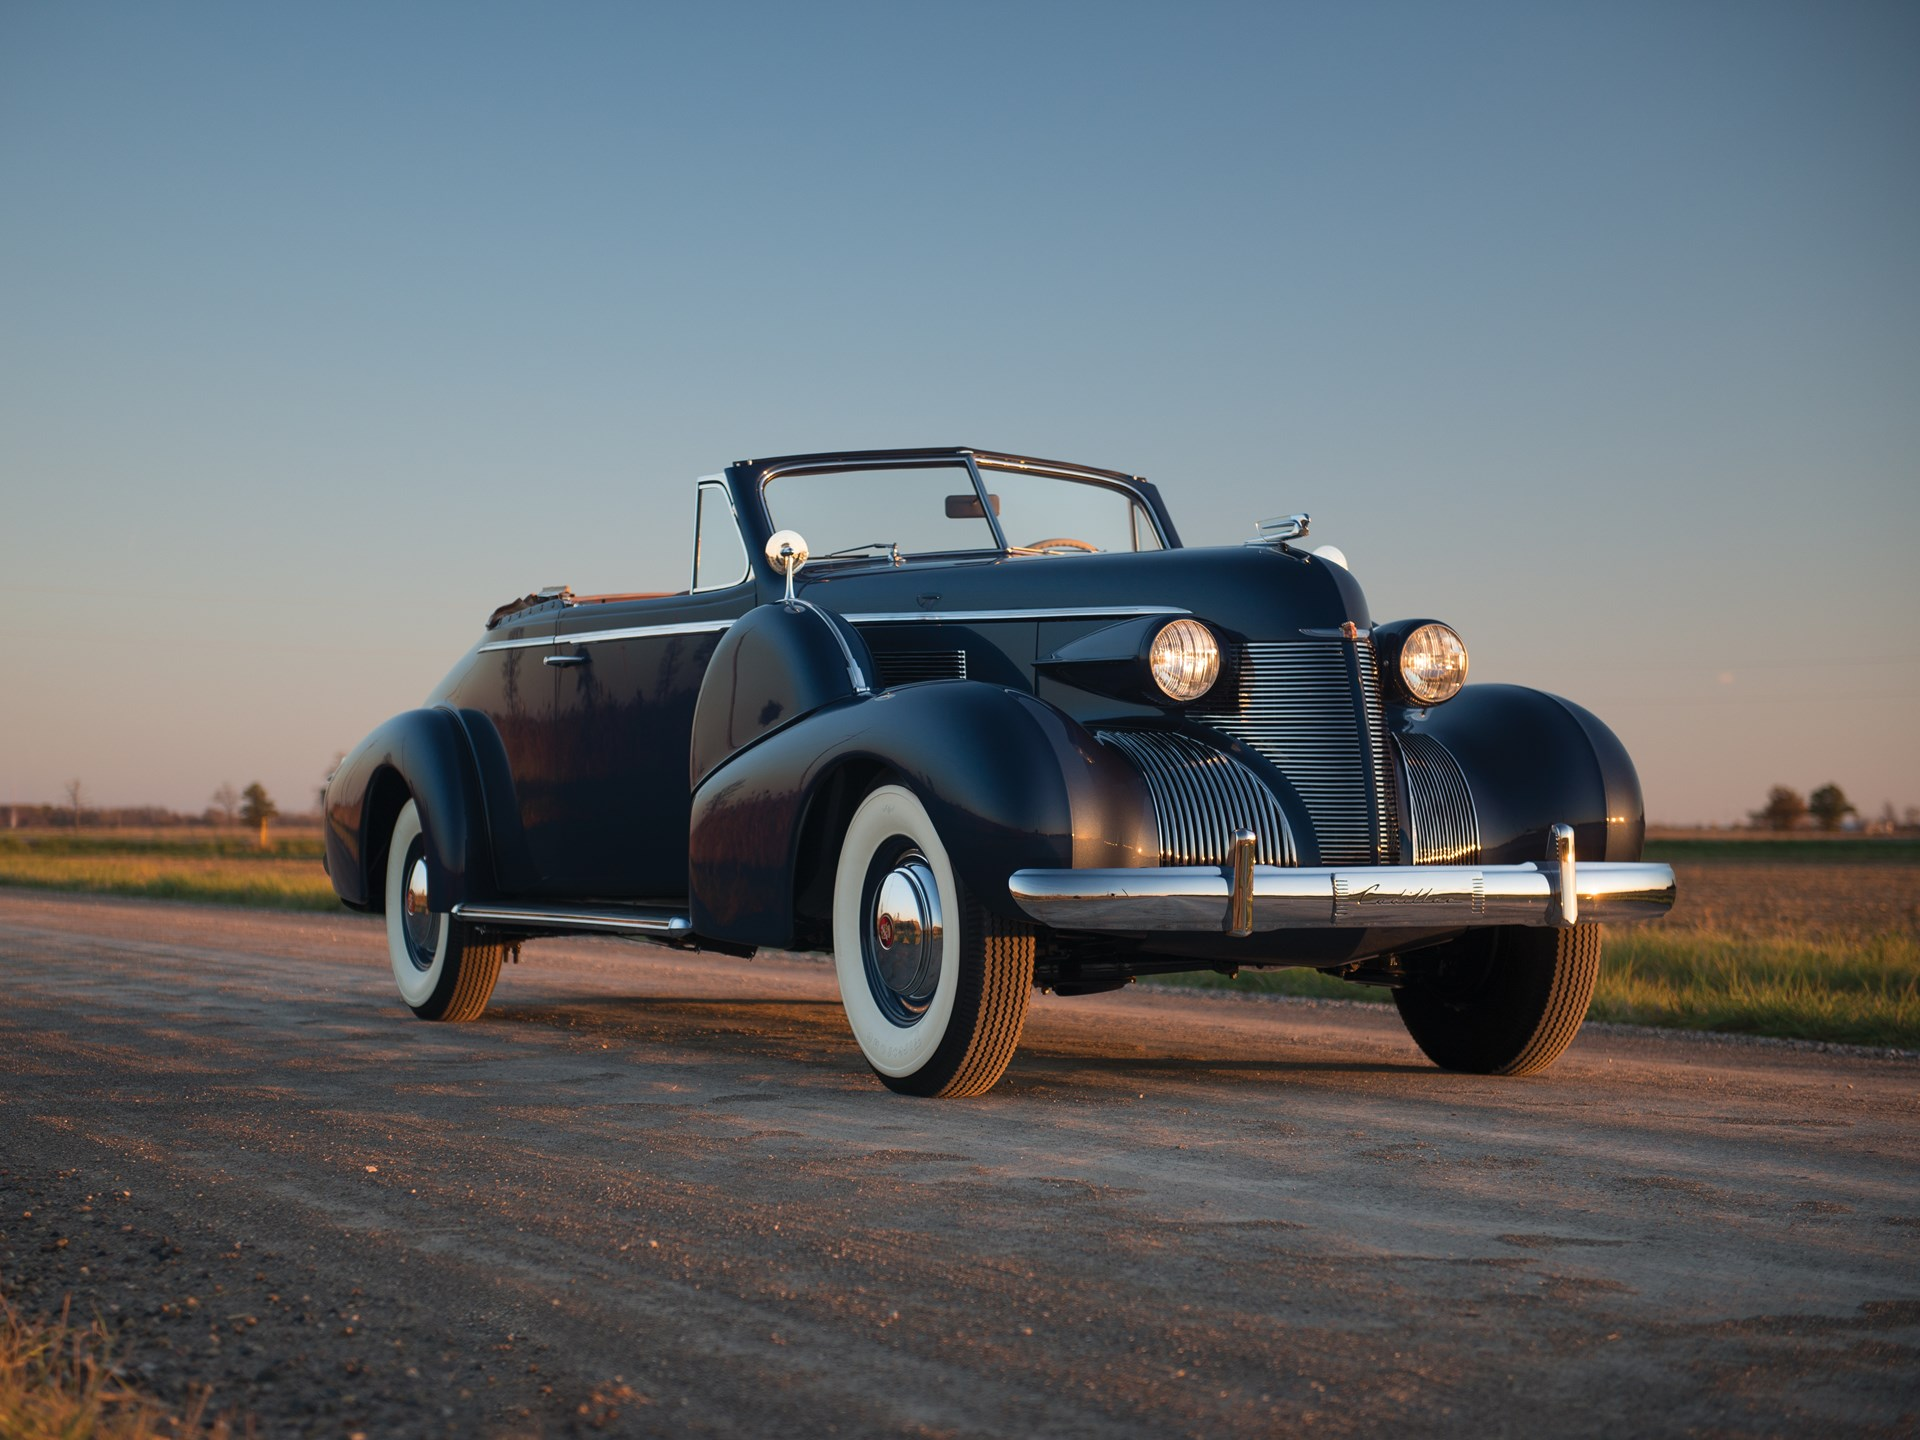 RM Sotheby's - 1939 Cadillac Series 75 Convertible Coupe by ...